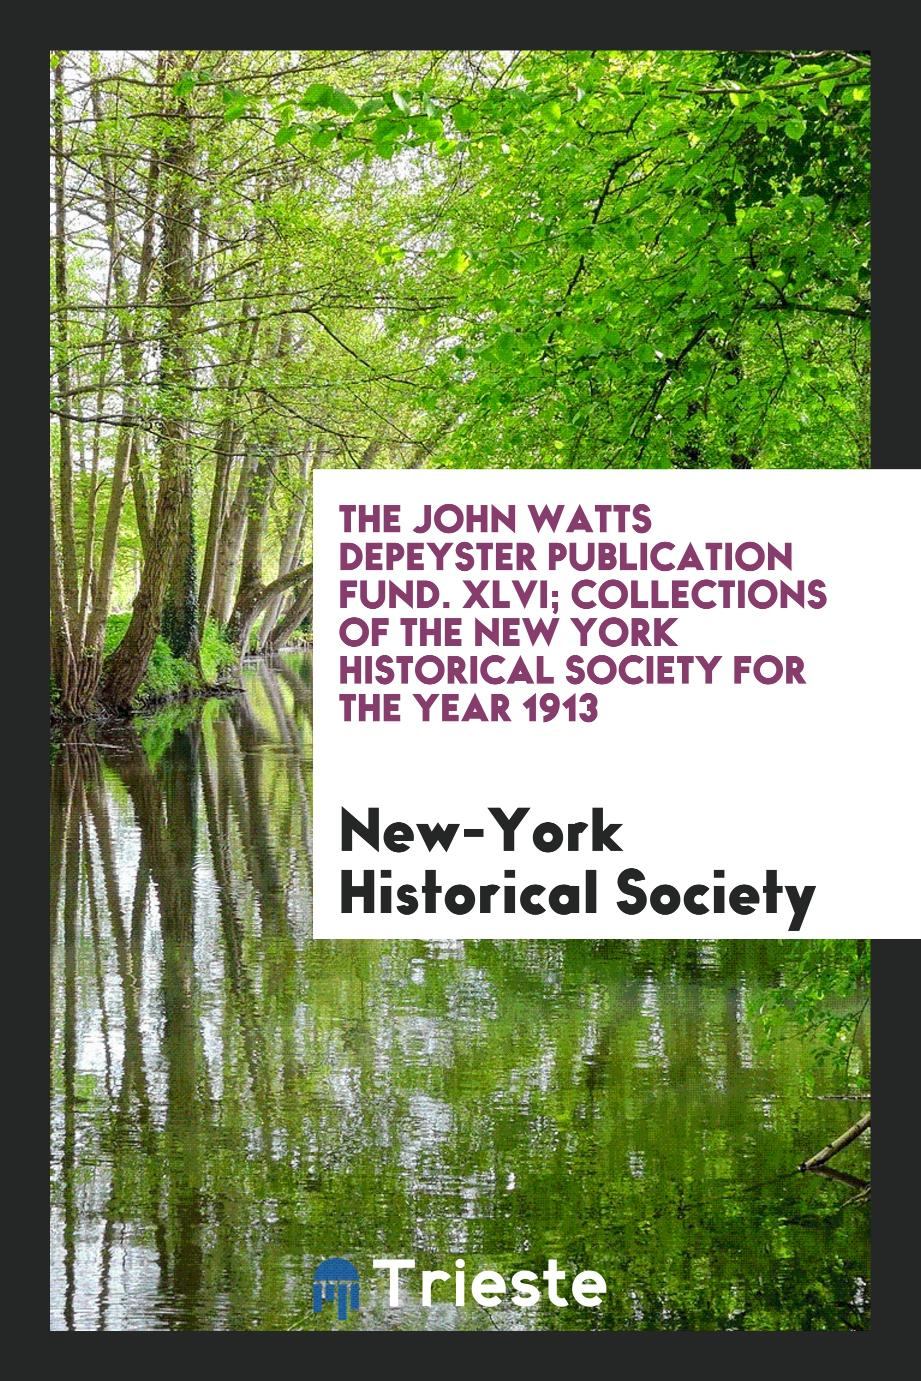 The John Watts DePeyster Publication Fund. XLVI; Collections of the New York Historical Society for the Year 1913